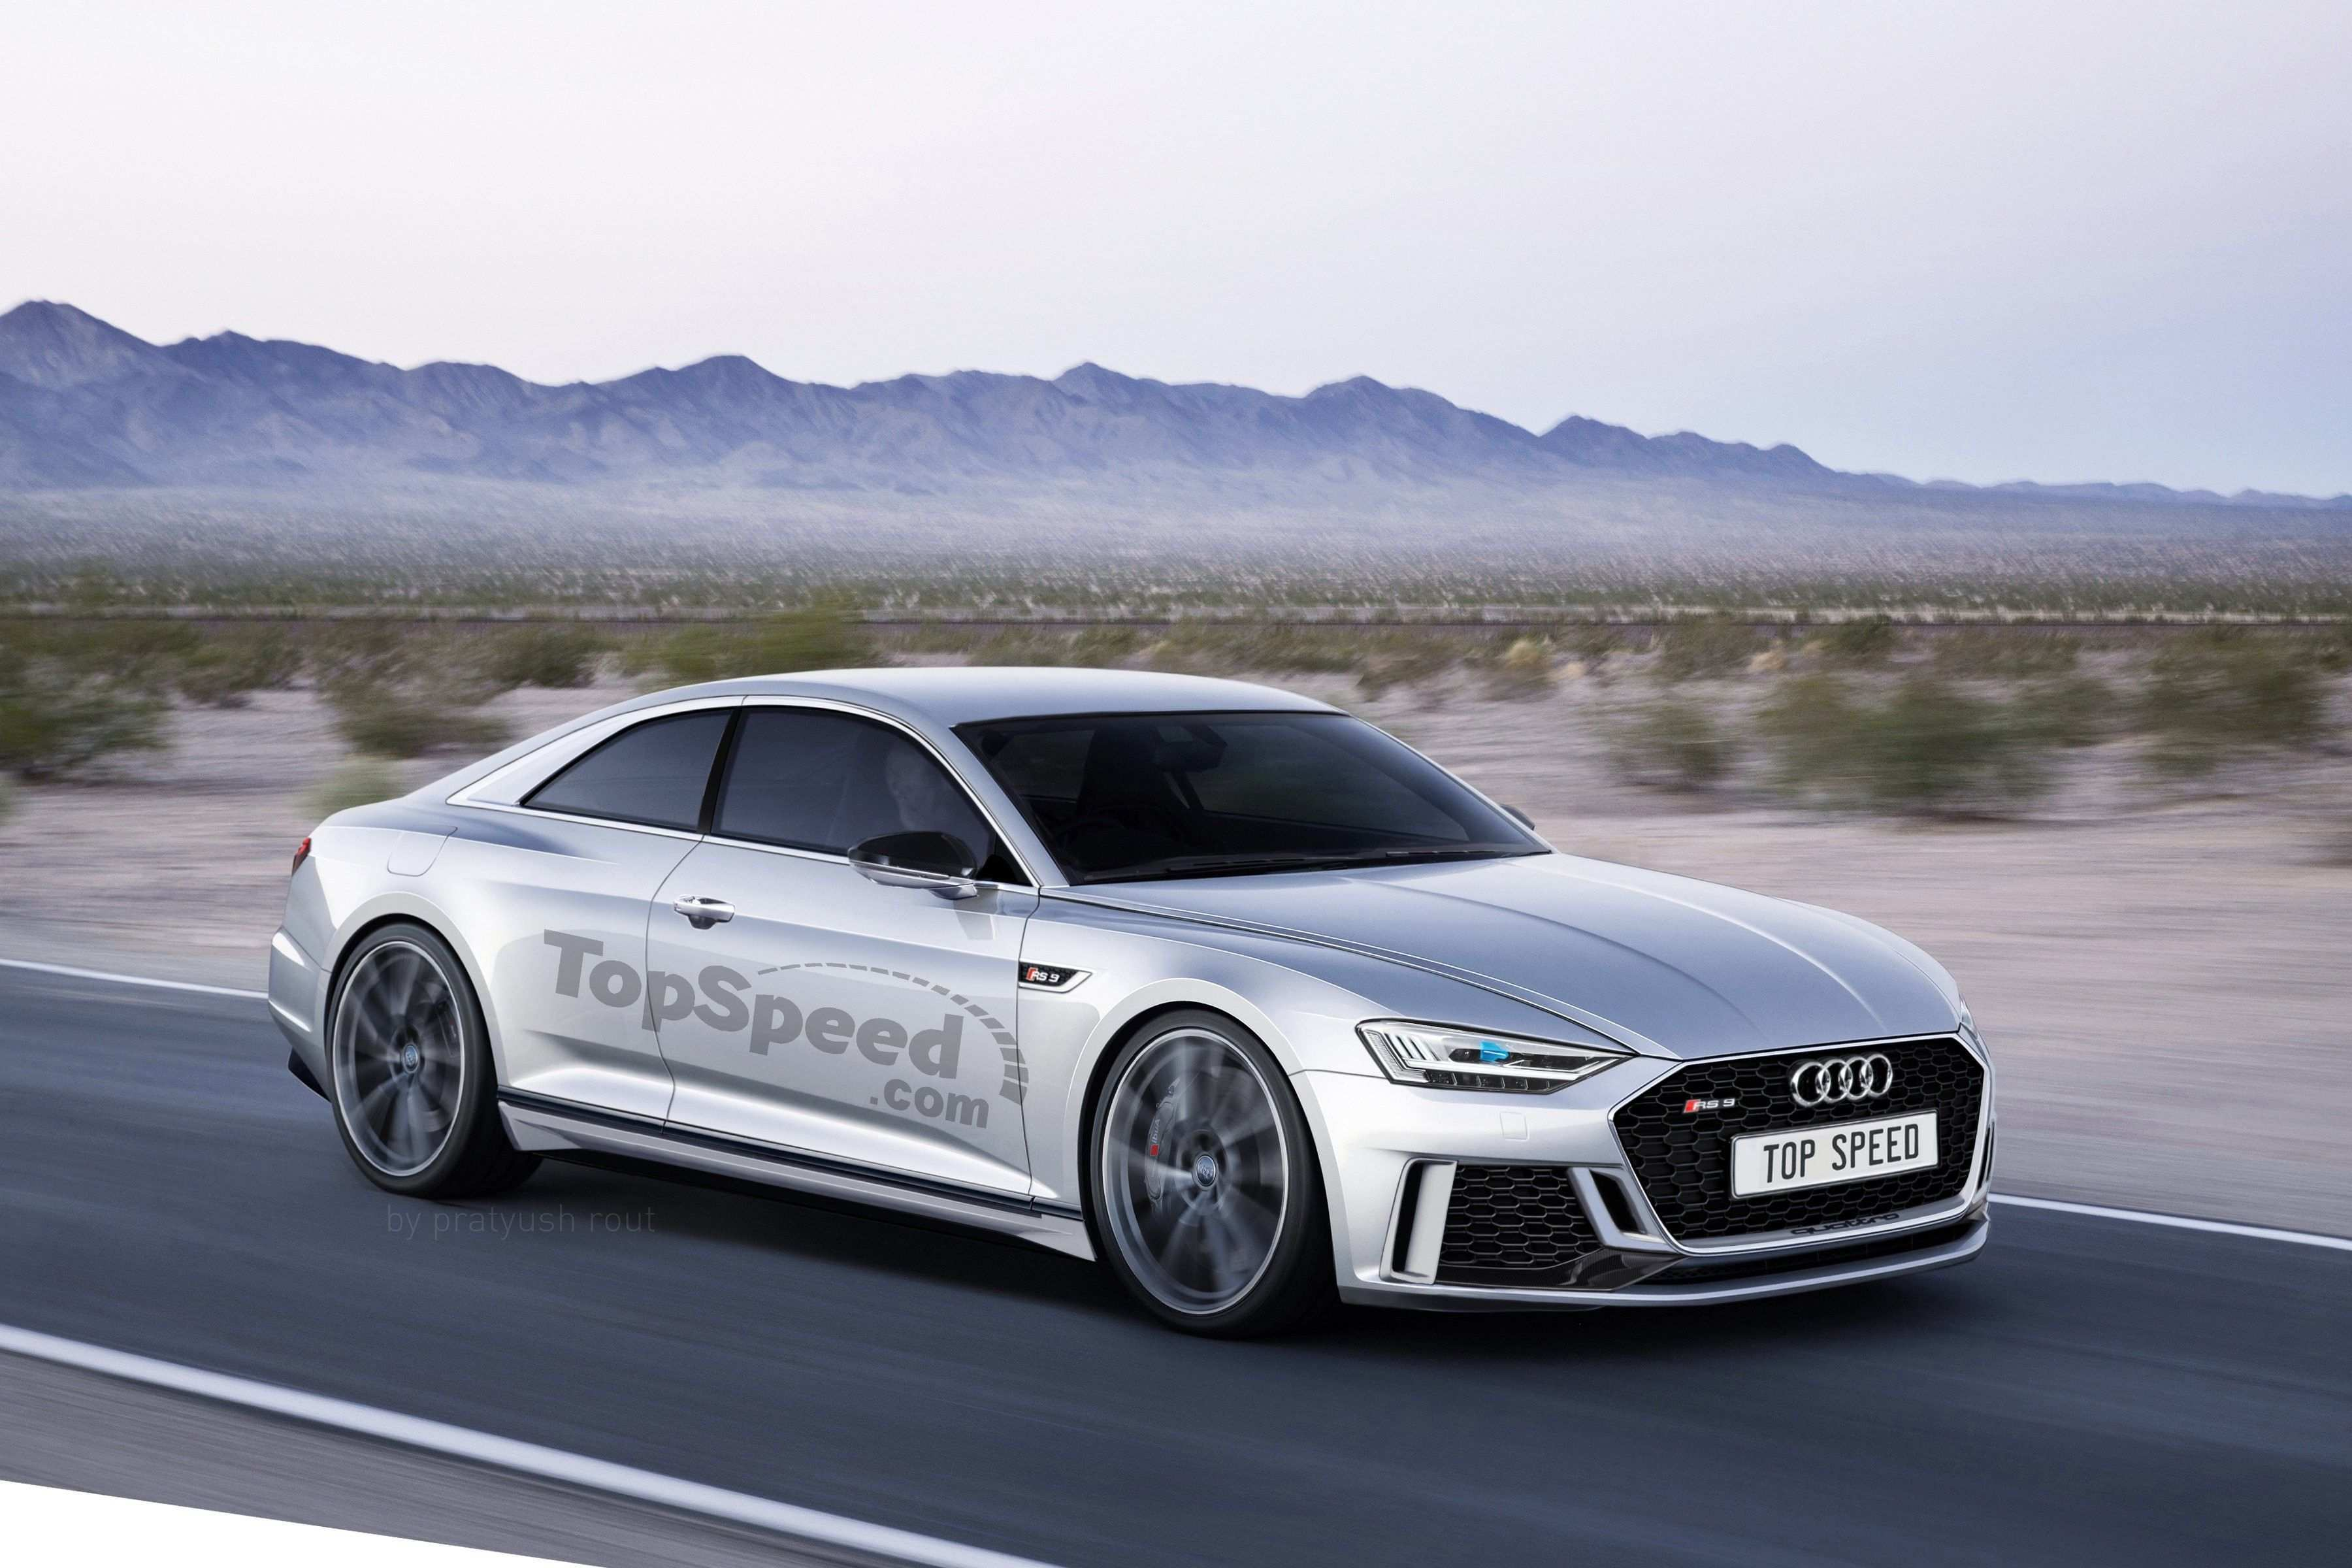 34 Best Review Audi S5 2020 Redesign and Concept with Audi S5 2020